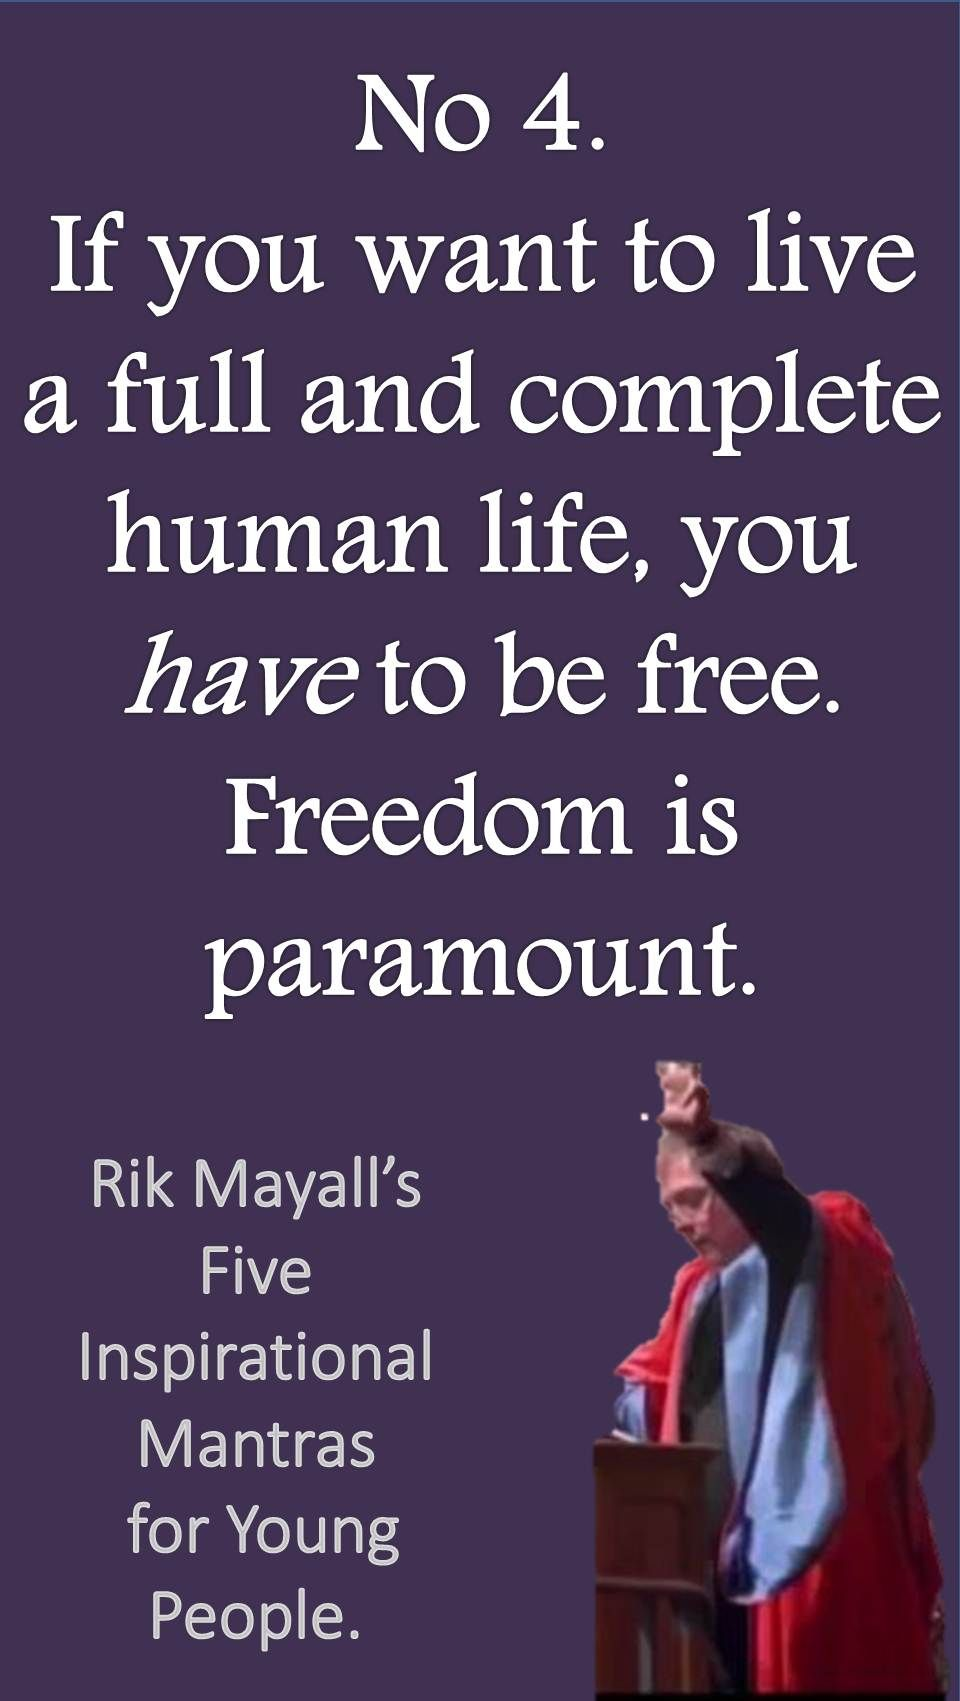 Inspirational Quotes For Young Adults Rik Mayall's 5 Inspirational Mantras For Young People Freedom